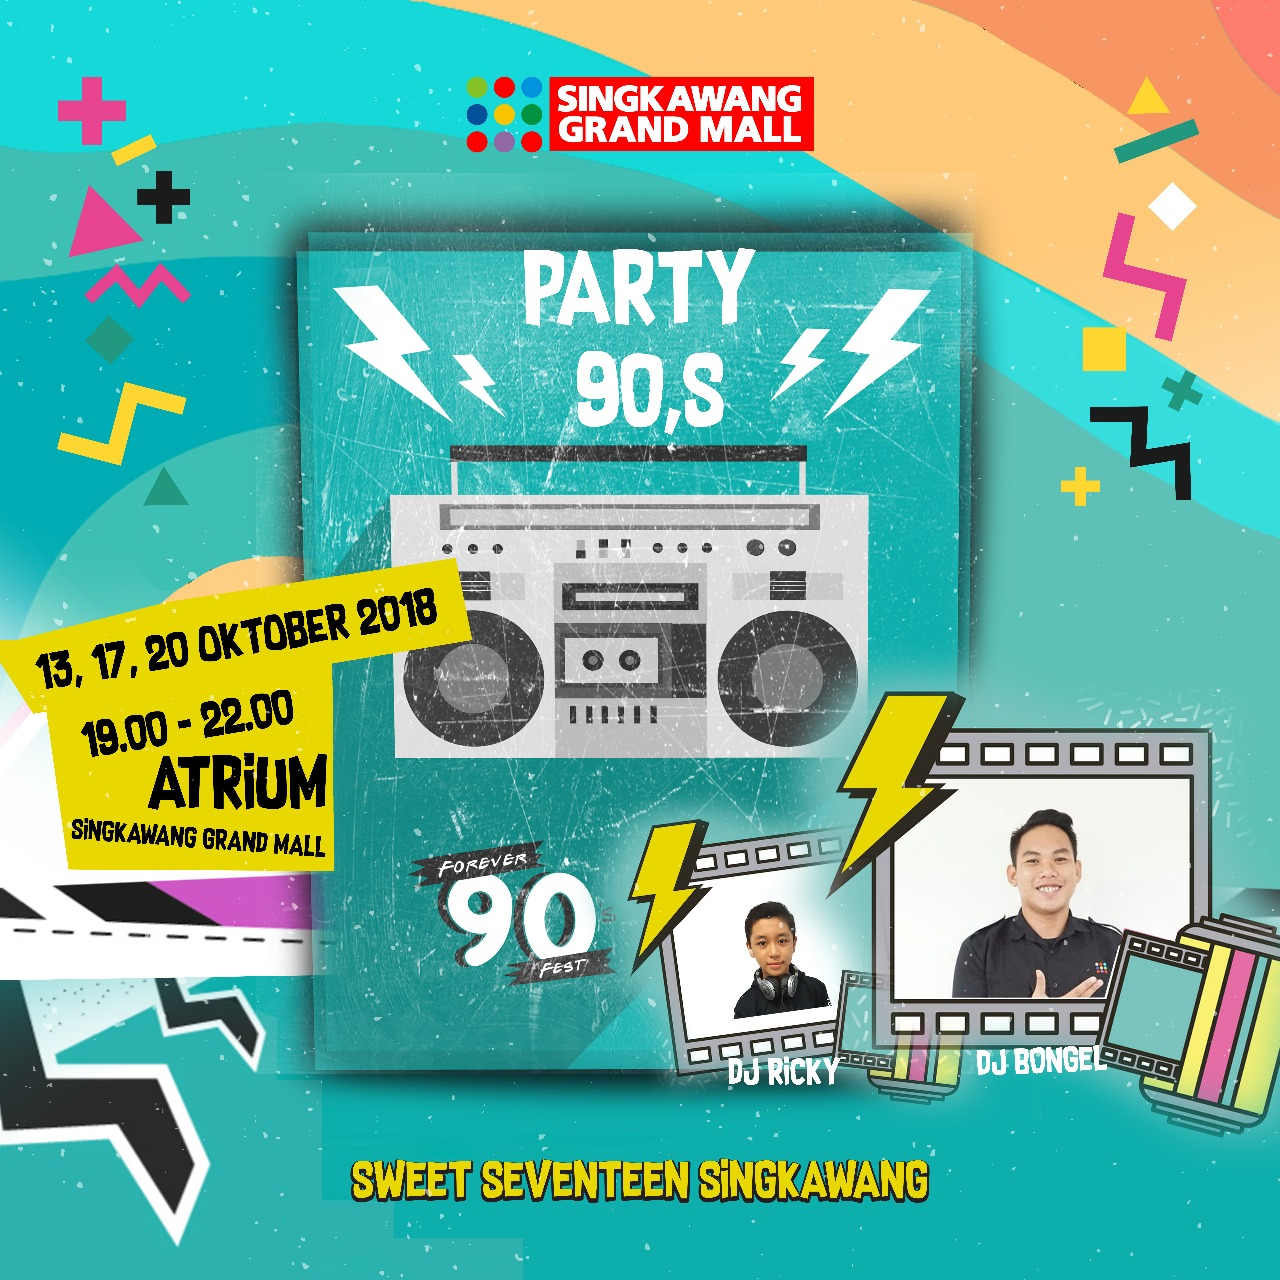 Party 90 SIngkawang Grand Mall